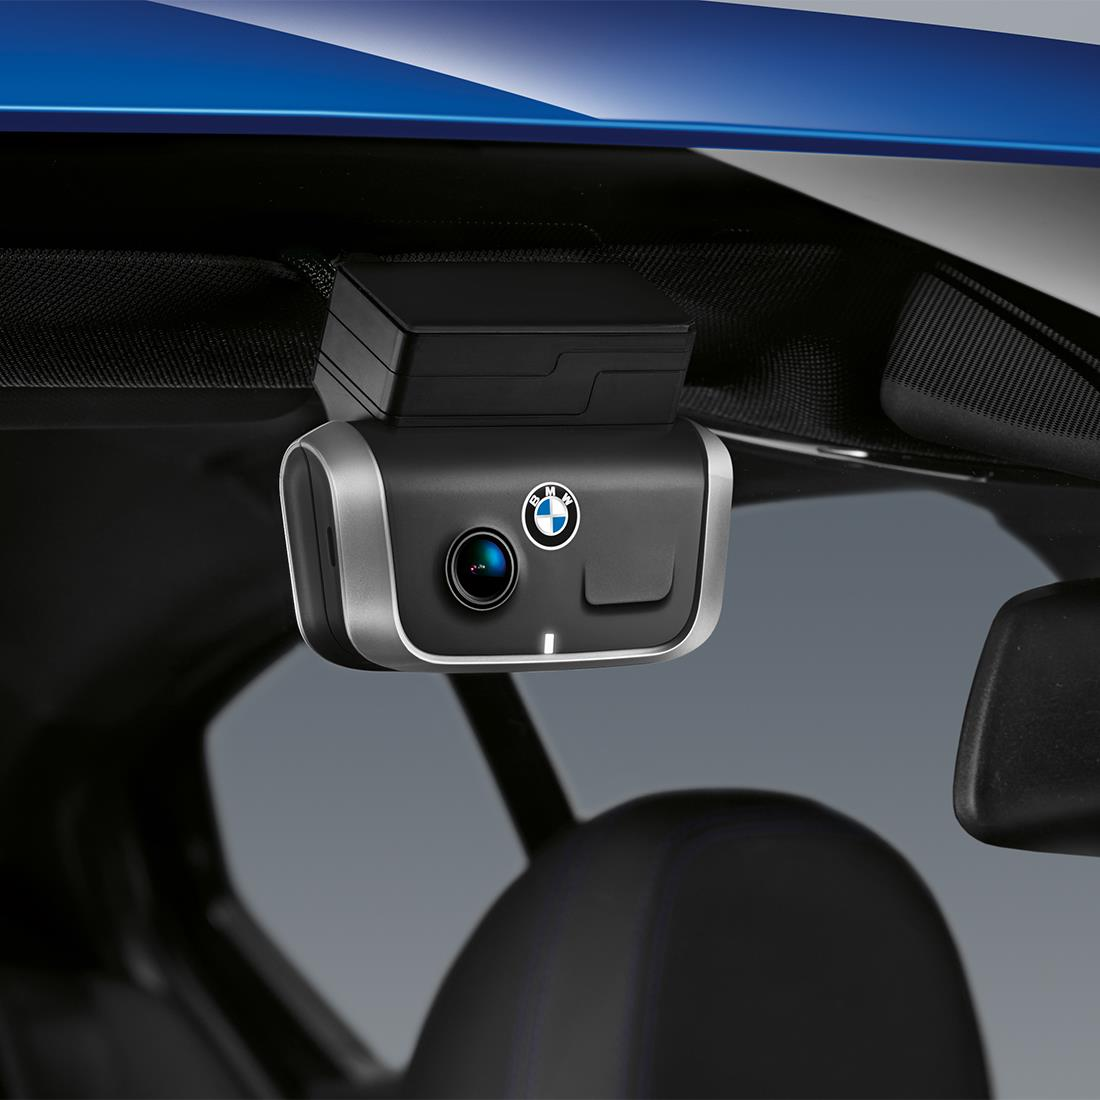 BMW Advanced Car Eye 2.0